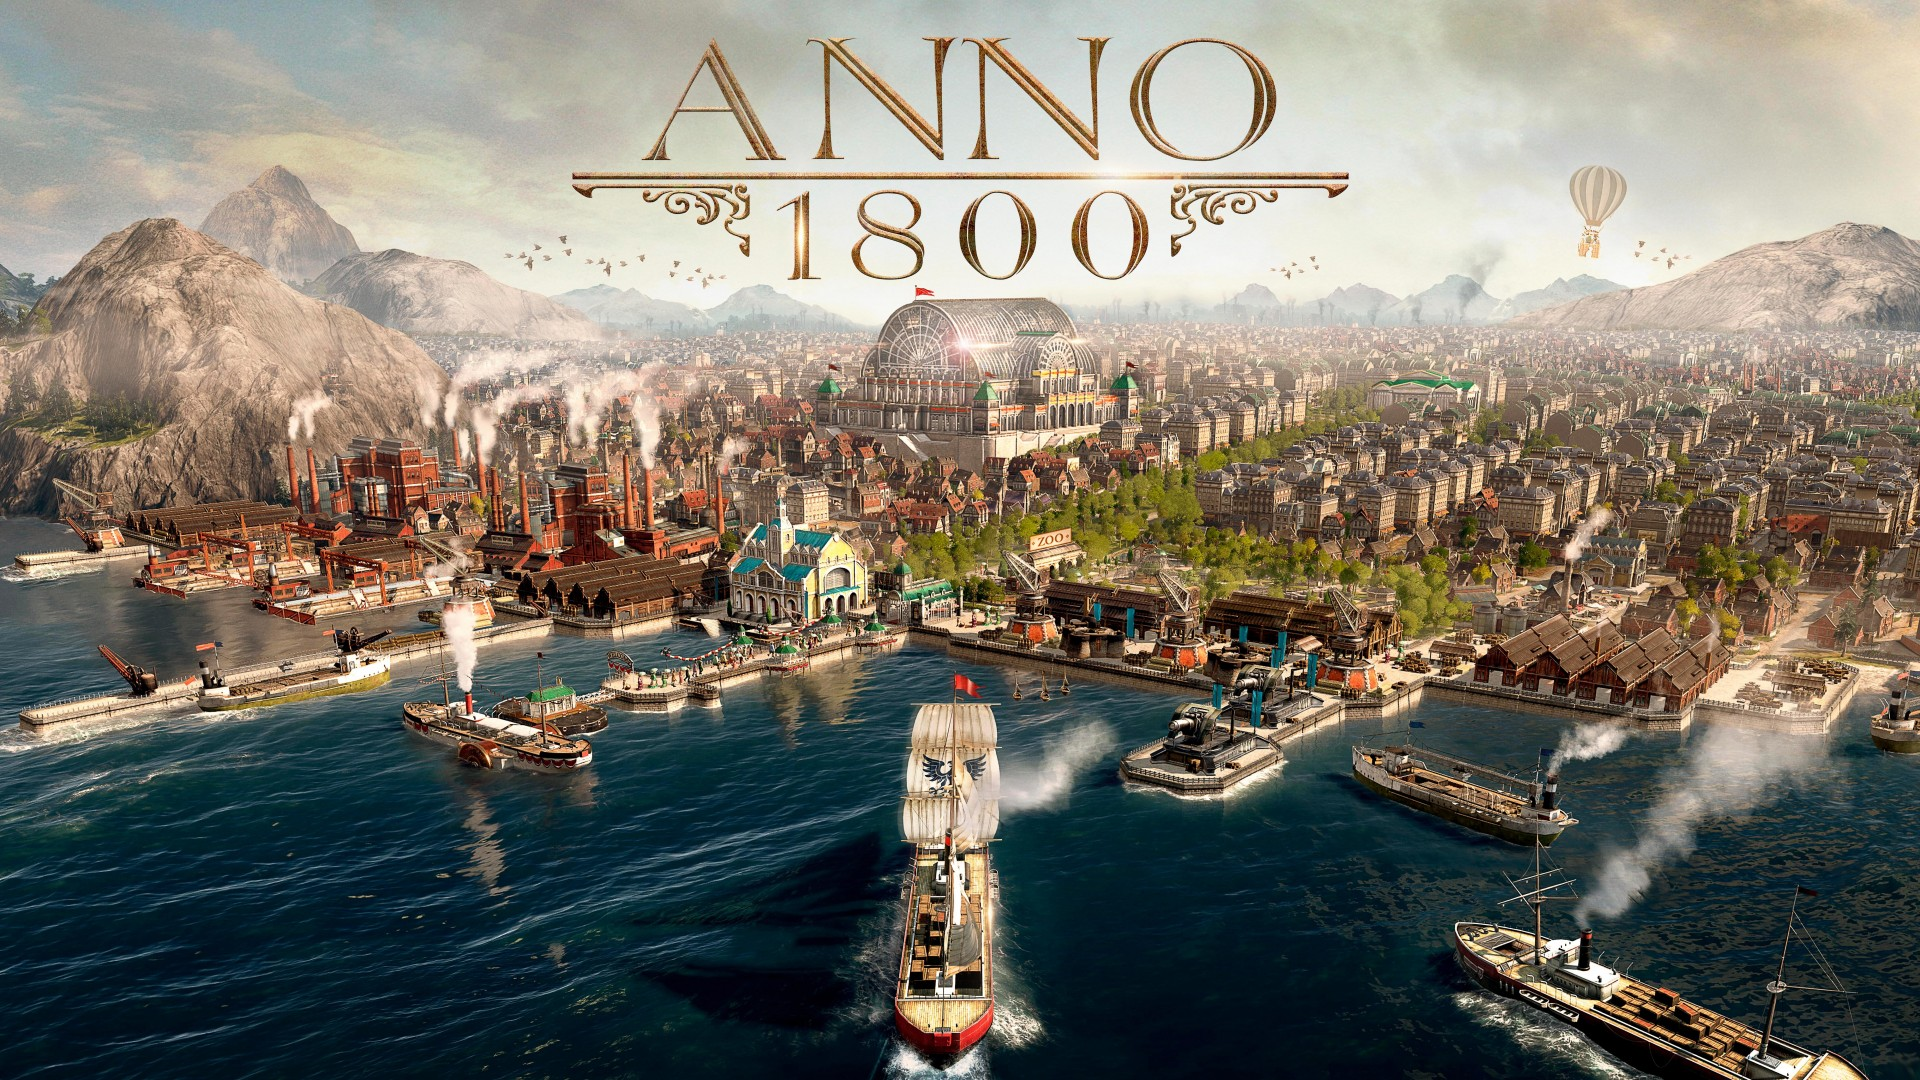 Anno 1800 2019 Game 4k 8k Wallpapers Hd Wallpapers Id